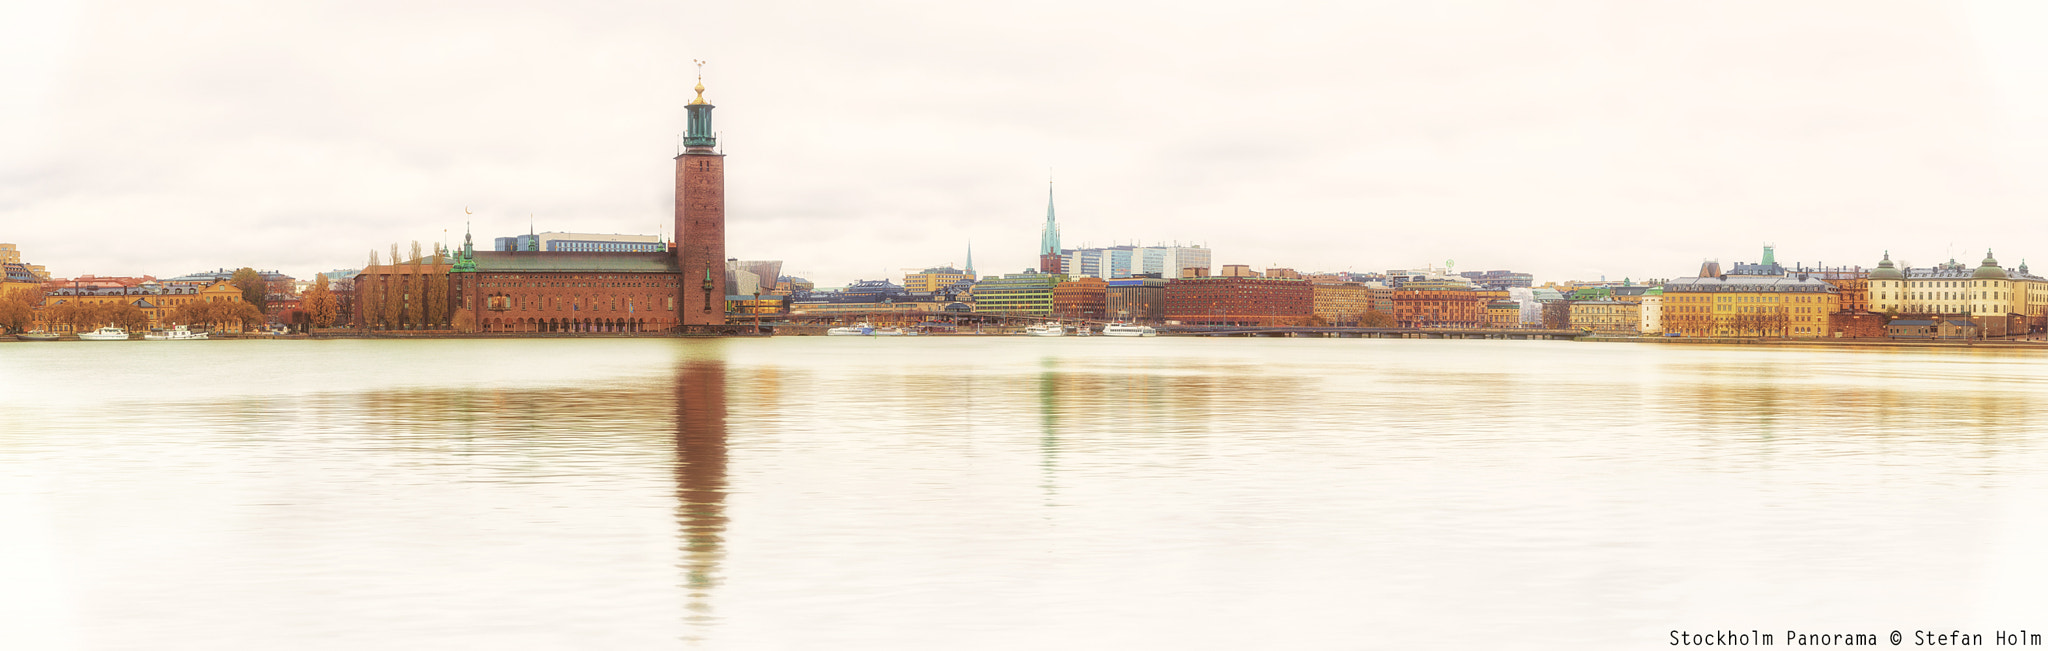 Photograph Stockholm Panorama by Stefan Holm on 500px